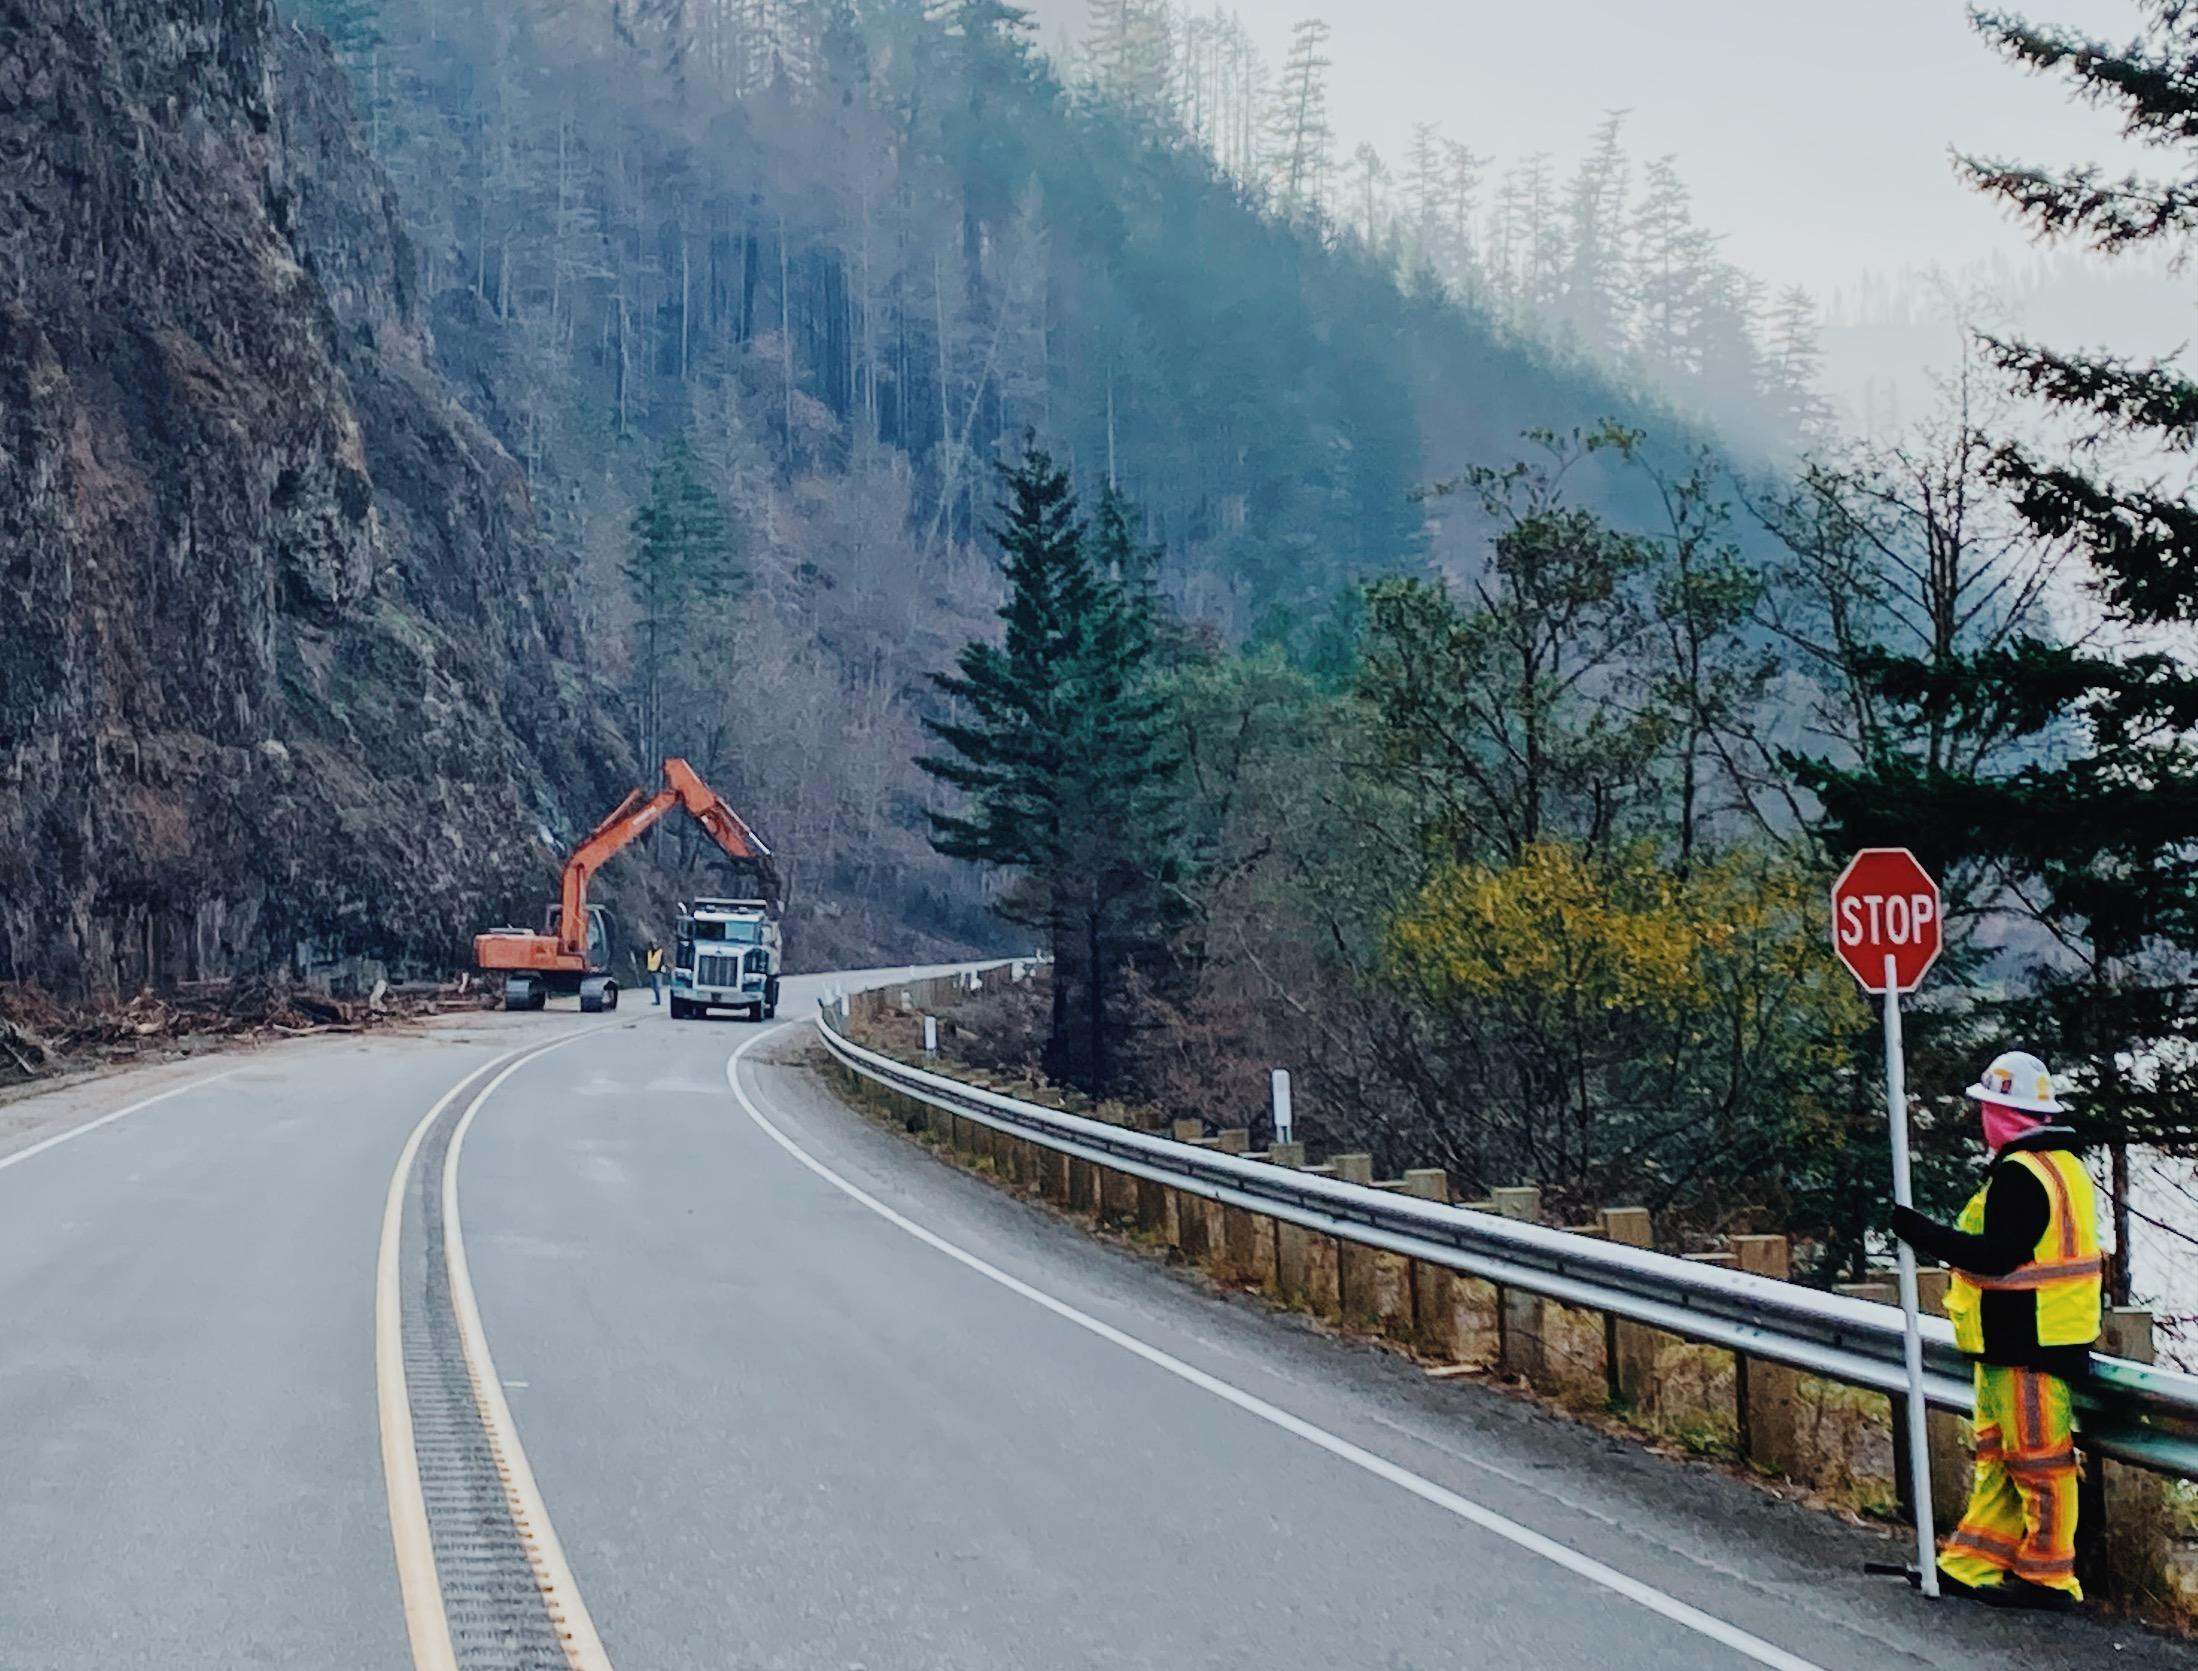 A road guard halts traffic as an excavtor removes debris that fell from rock faces above Highway 224.